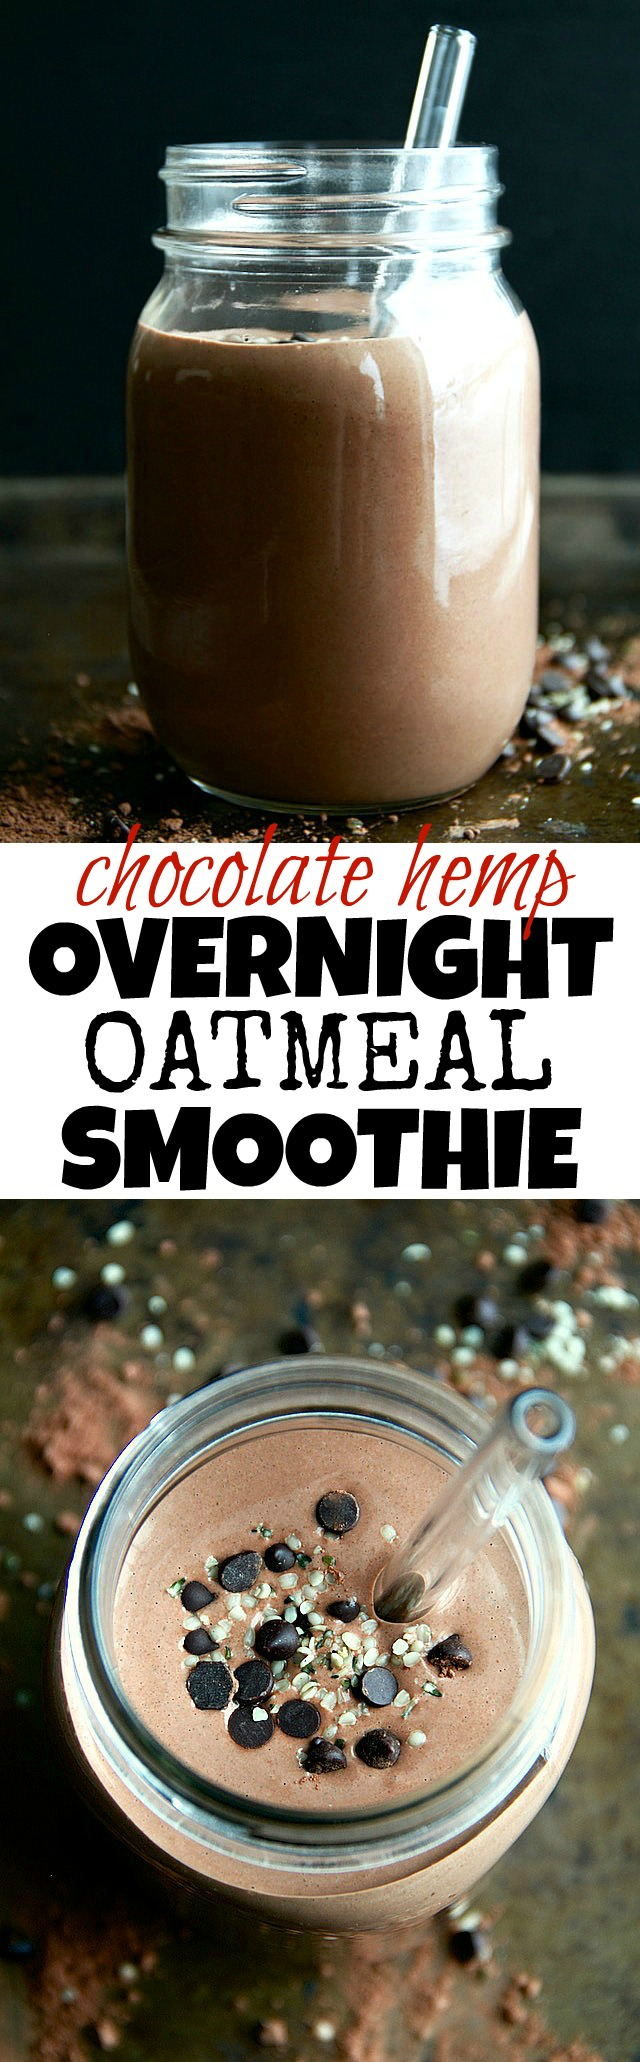 This healthy Chocolate Hemp Overnight Oatmeal Smoothie tastes just like melted chocolate ice cream and packs an impressive 15 g of plant-based protein while meeting the minimum RDA for omega-3s! | runningwithspoons.com #vegan #glutenfree #recipe